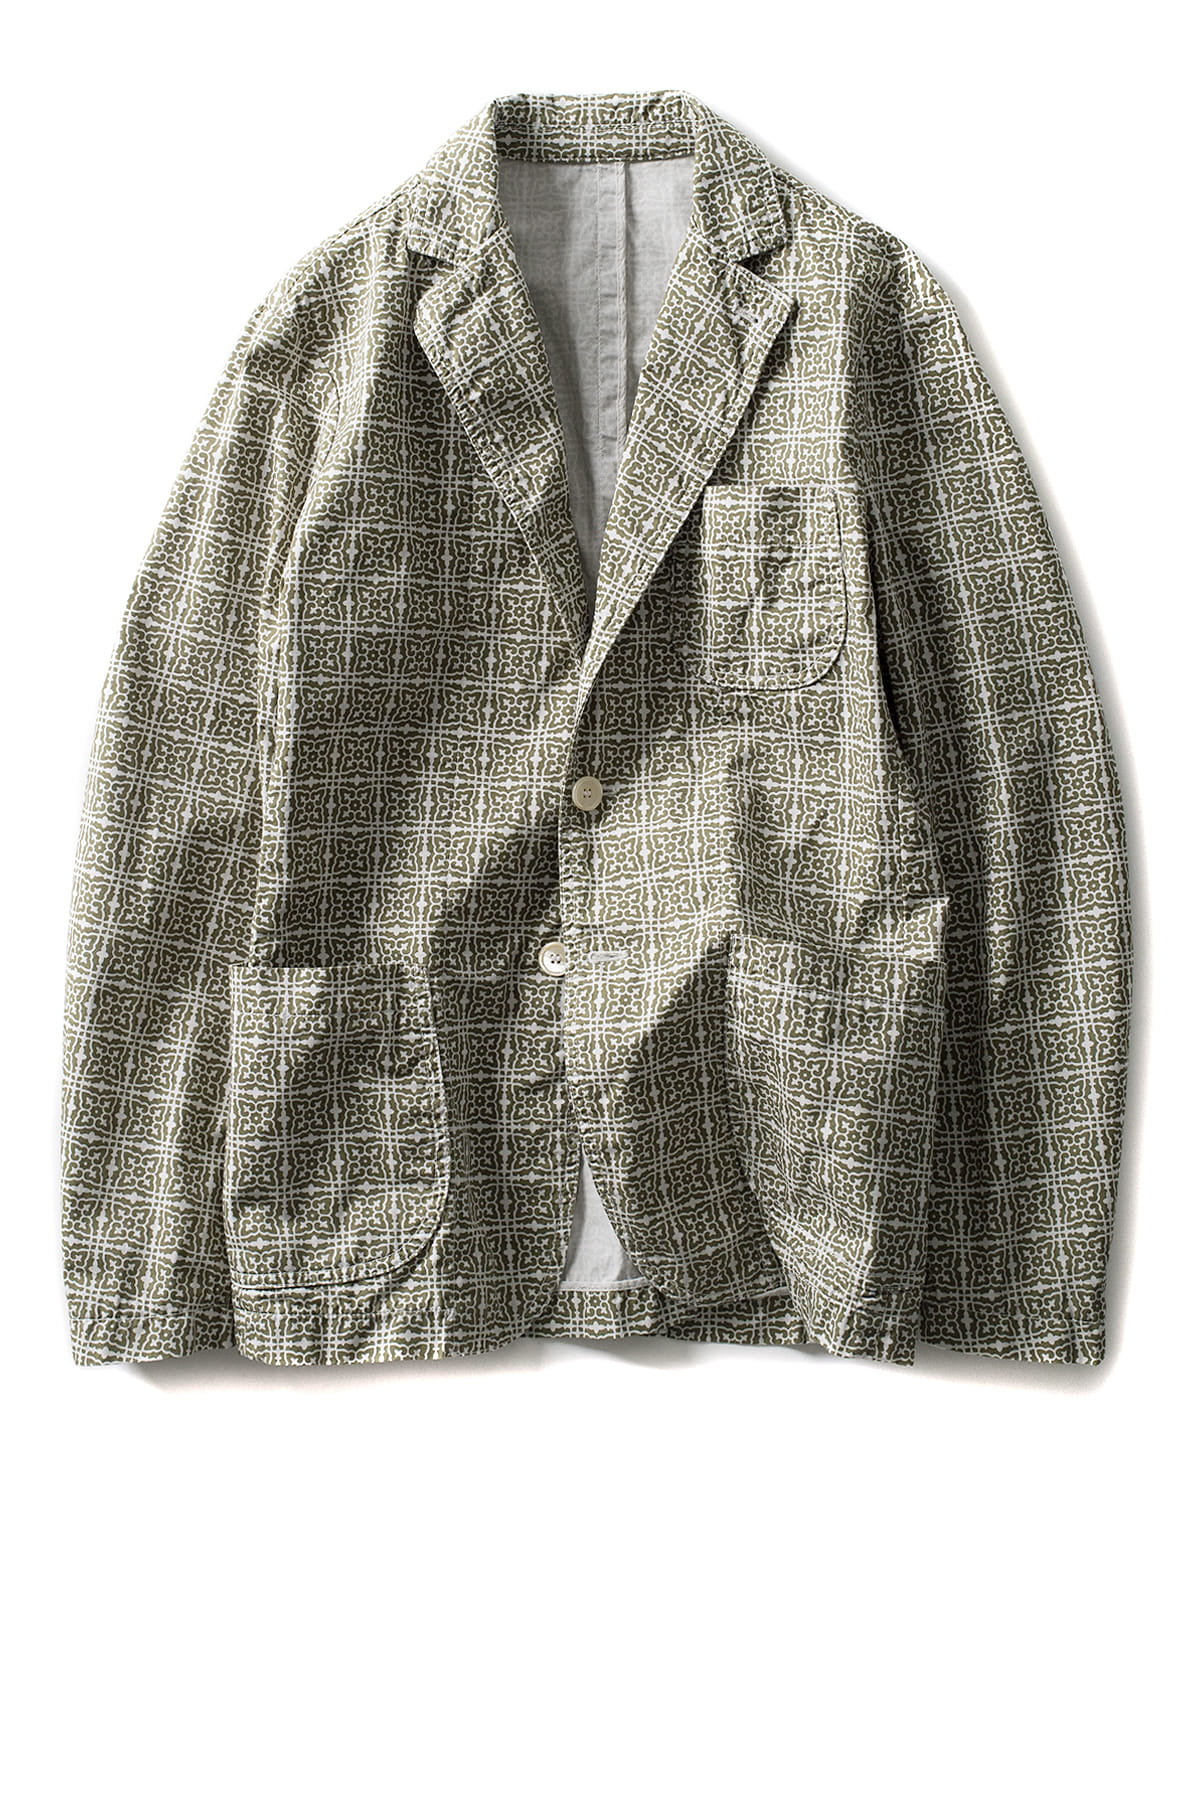 East Harbour Surplus : Barry Jacket (Pattern Green)